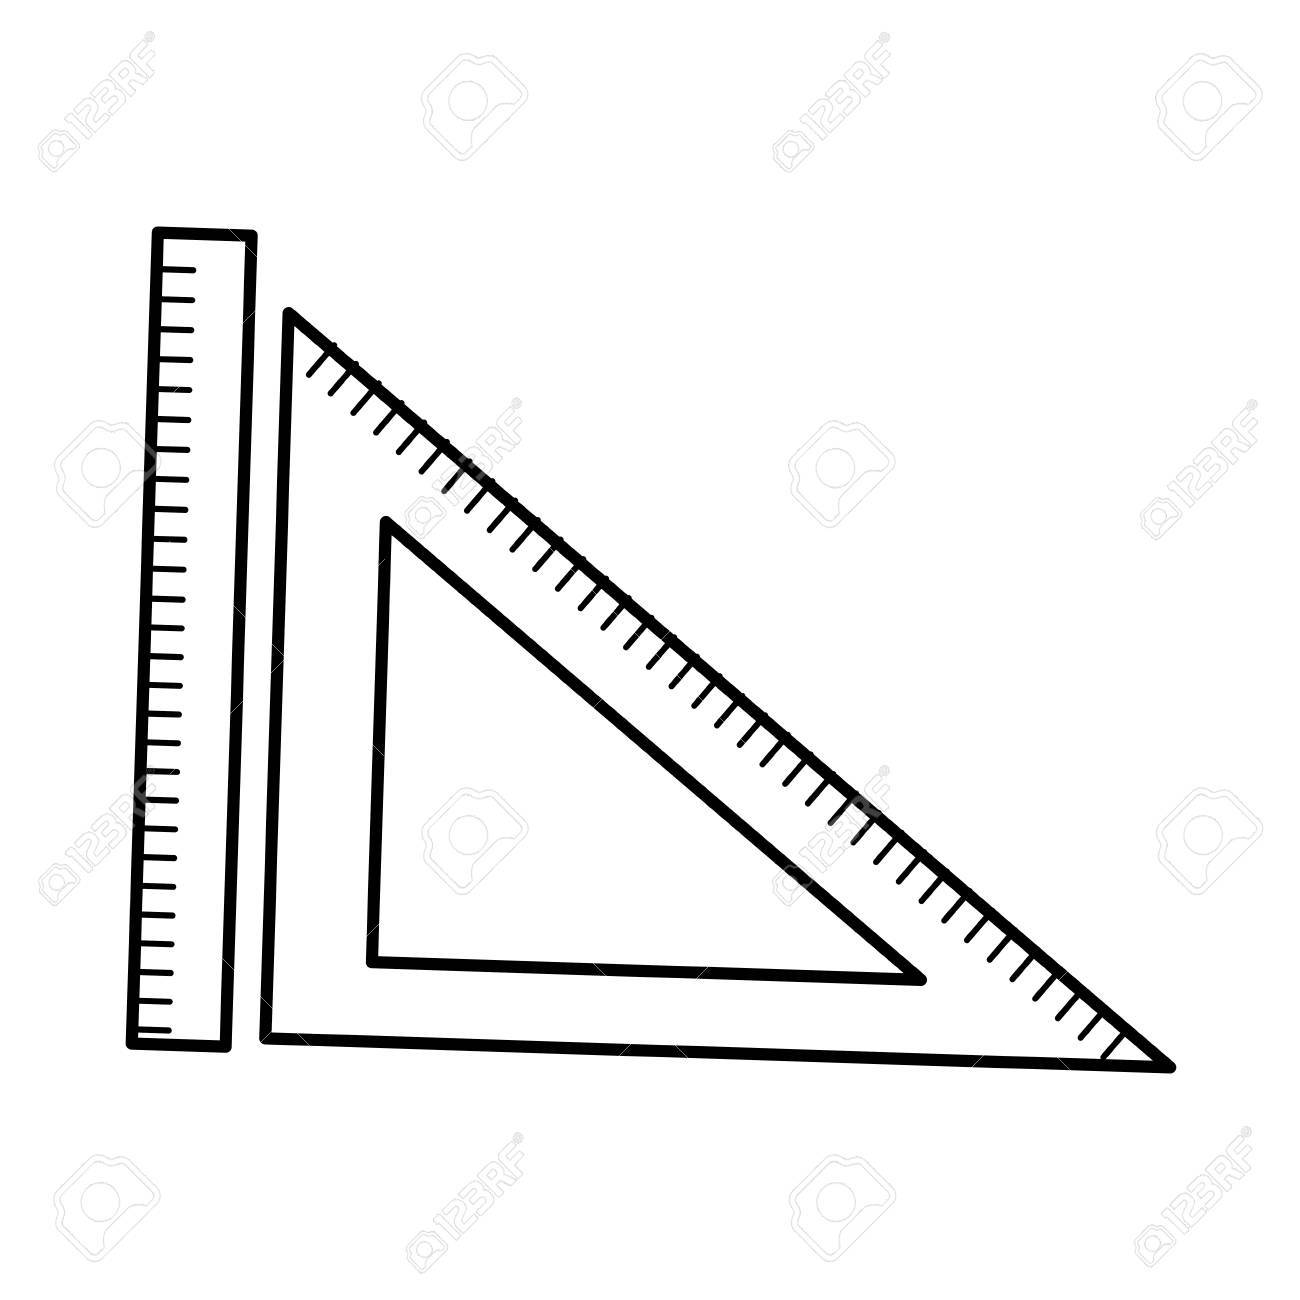 Ruler And Triangle Ruler Geometry Measuring Objects